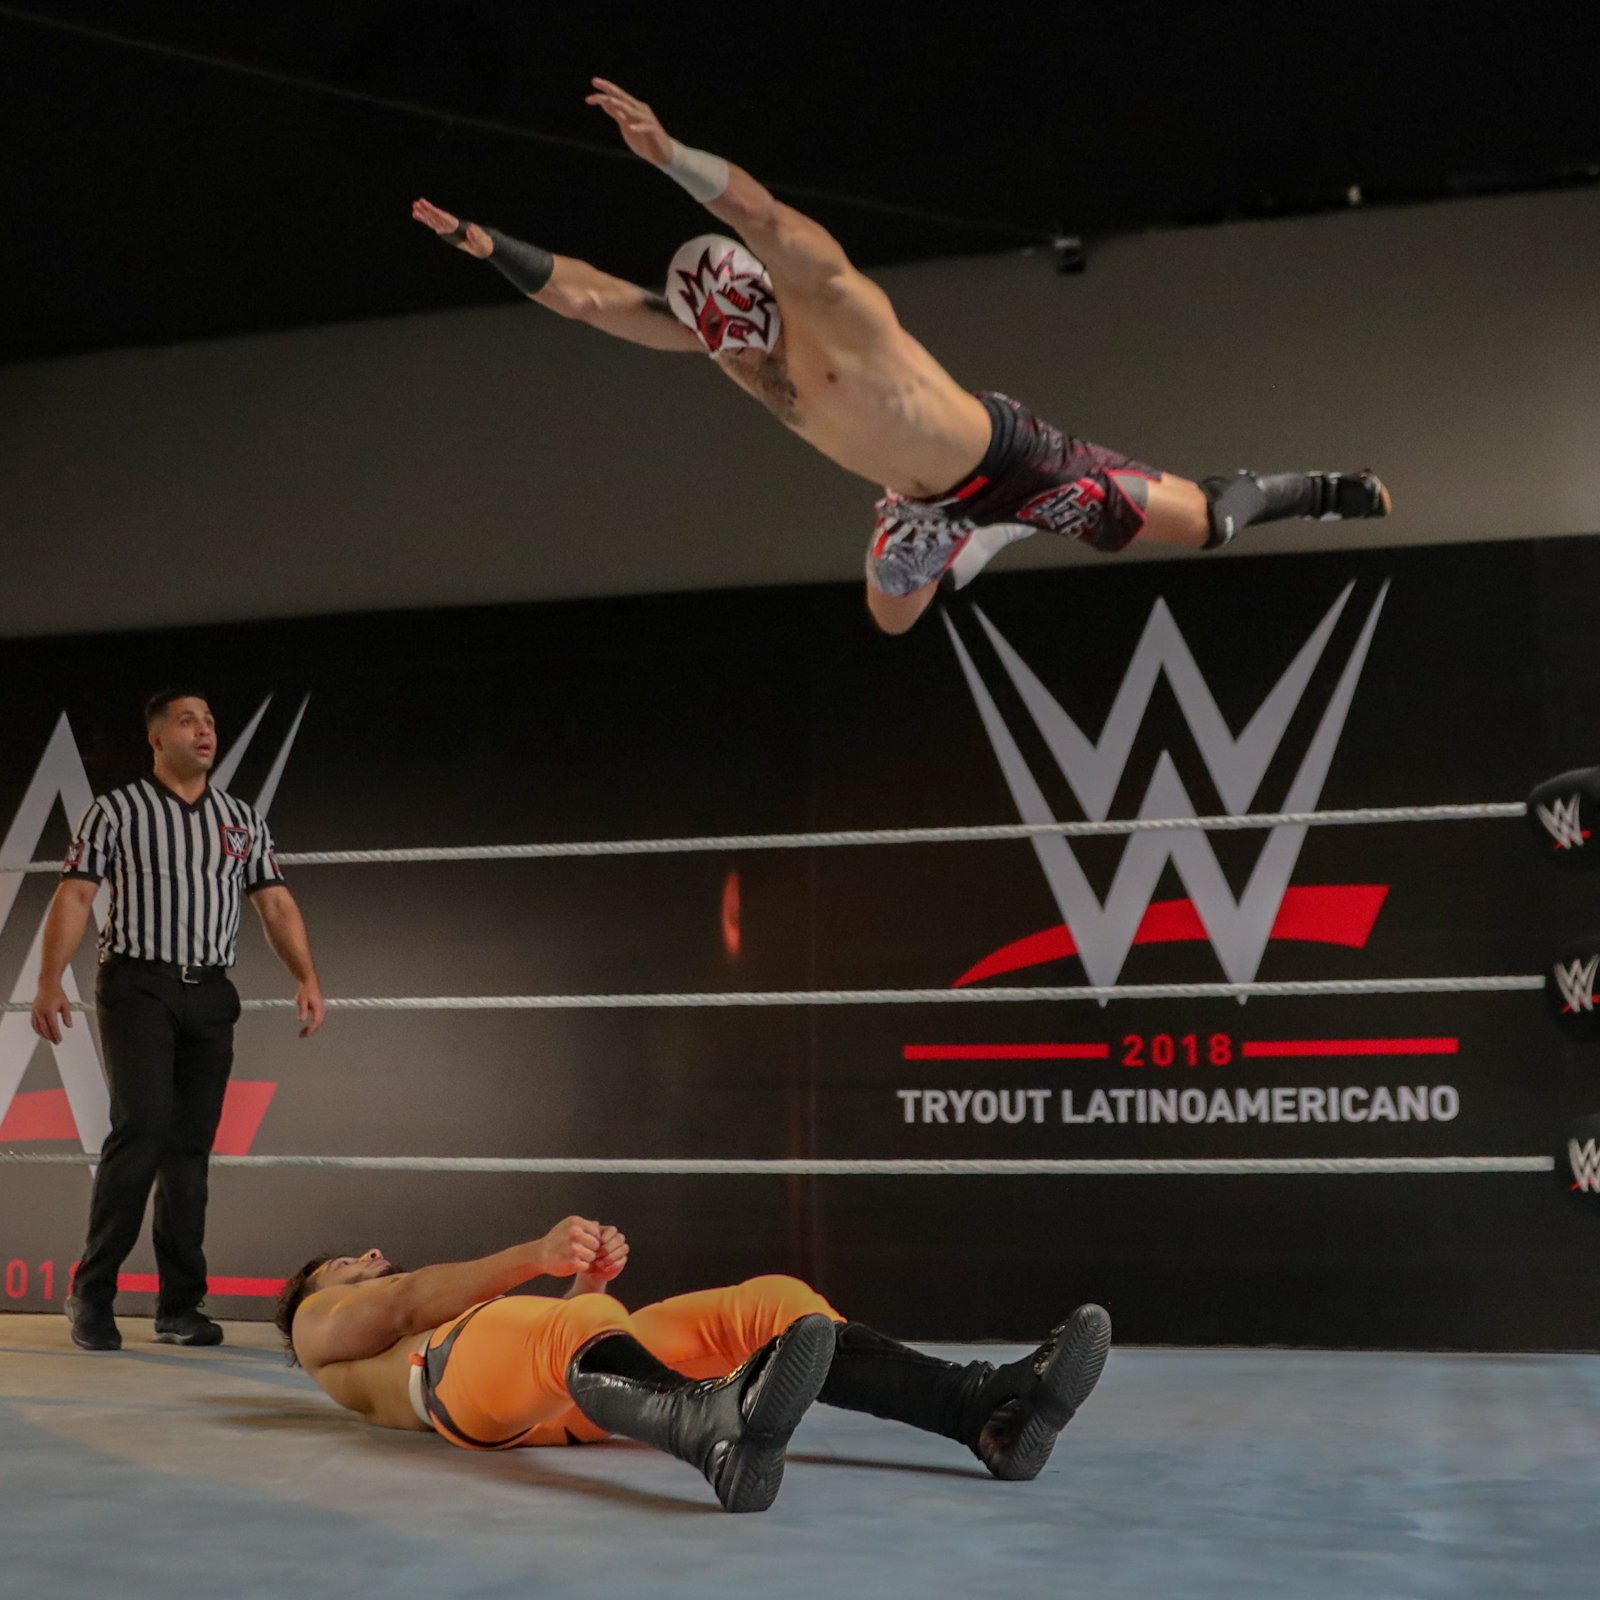 With a potential WWE contract opportunity at stake, the prospects don't hesitate to put it all on the line.